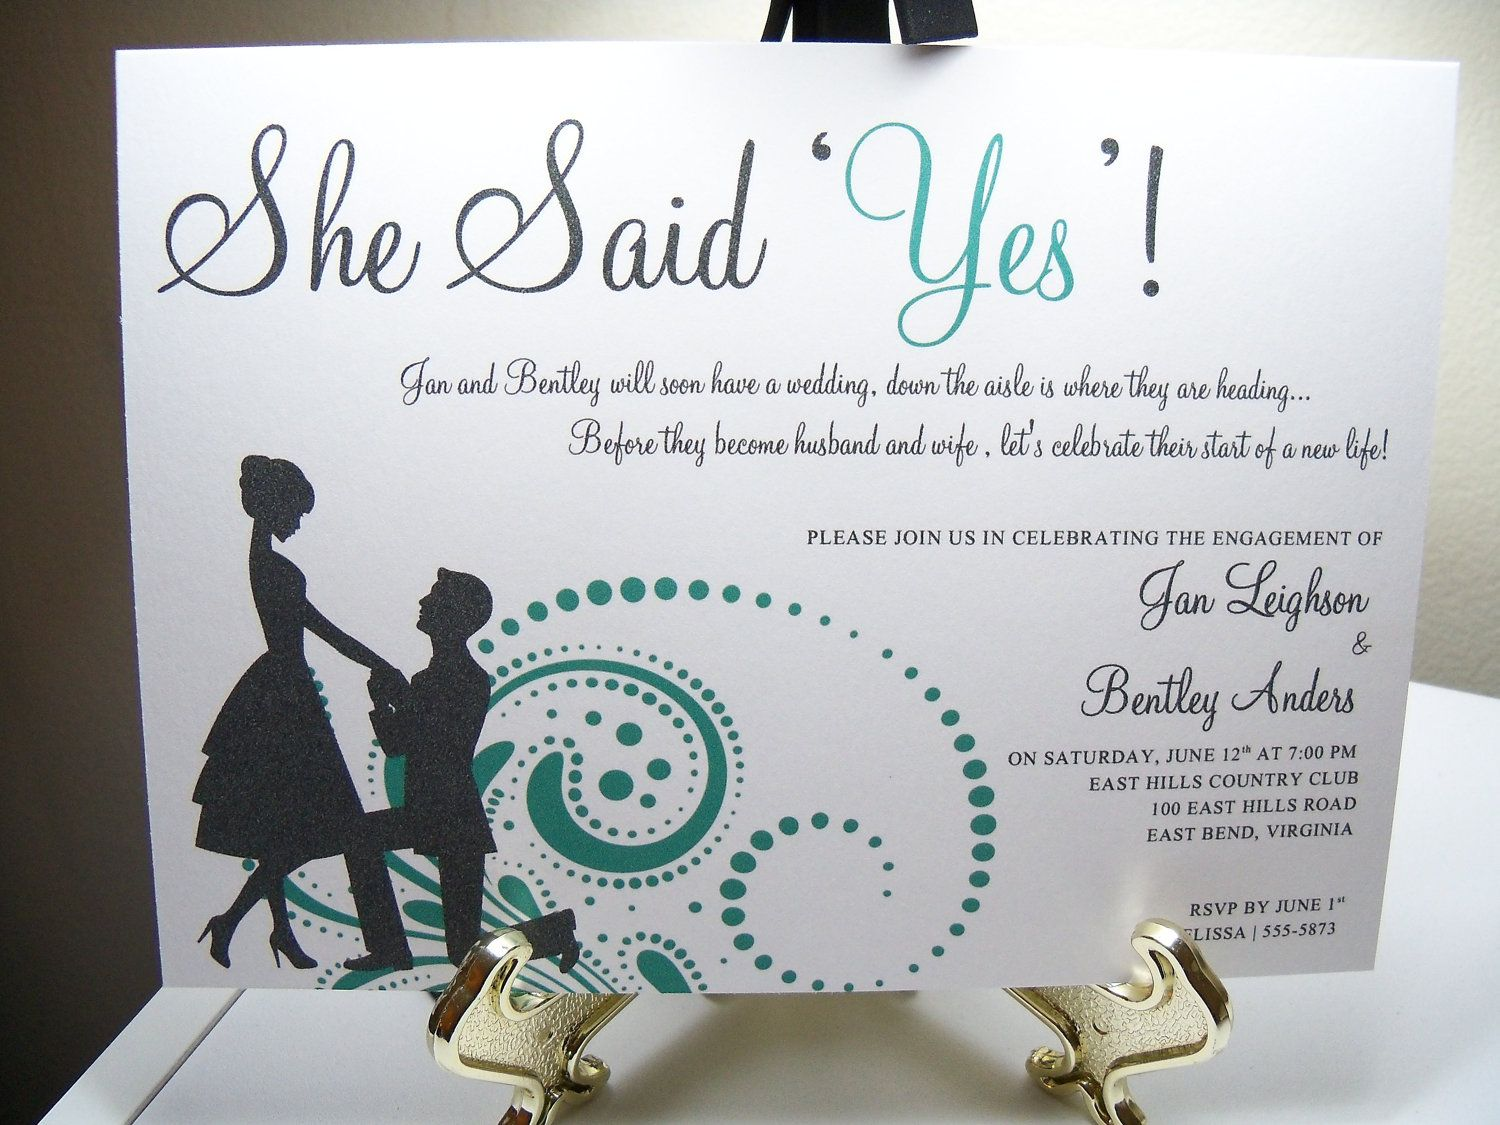 Engagement Party Invitation She Said Yes – Engagement Party Invitations Etsy